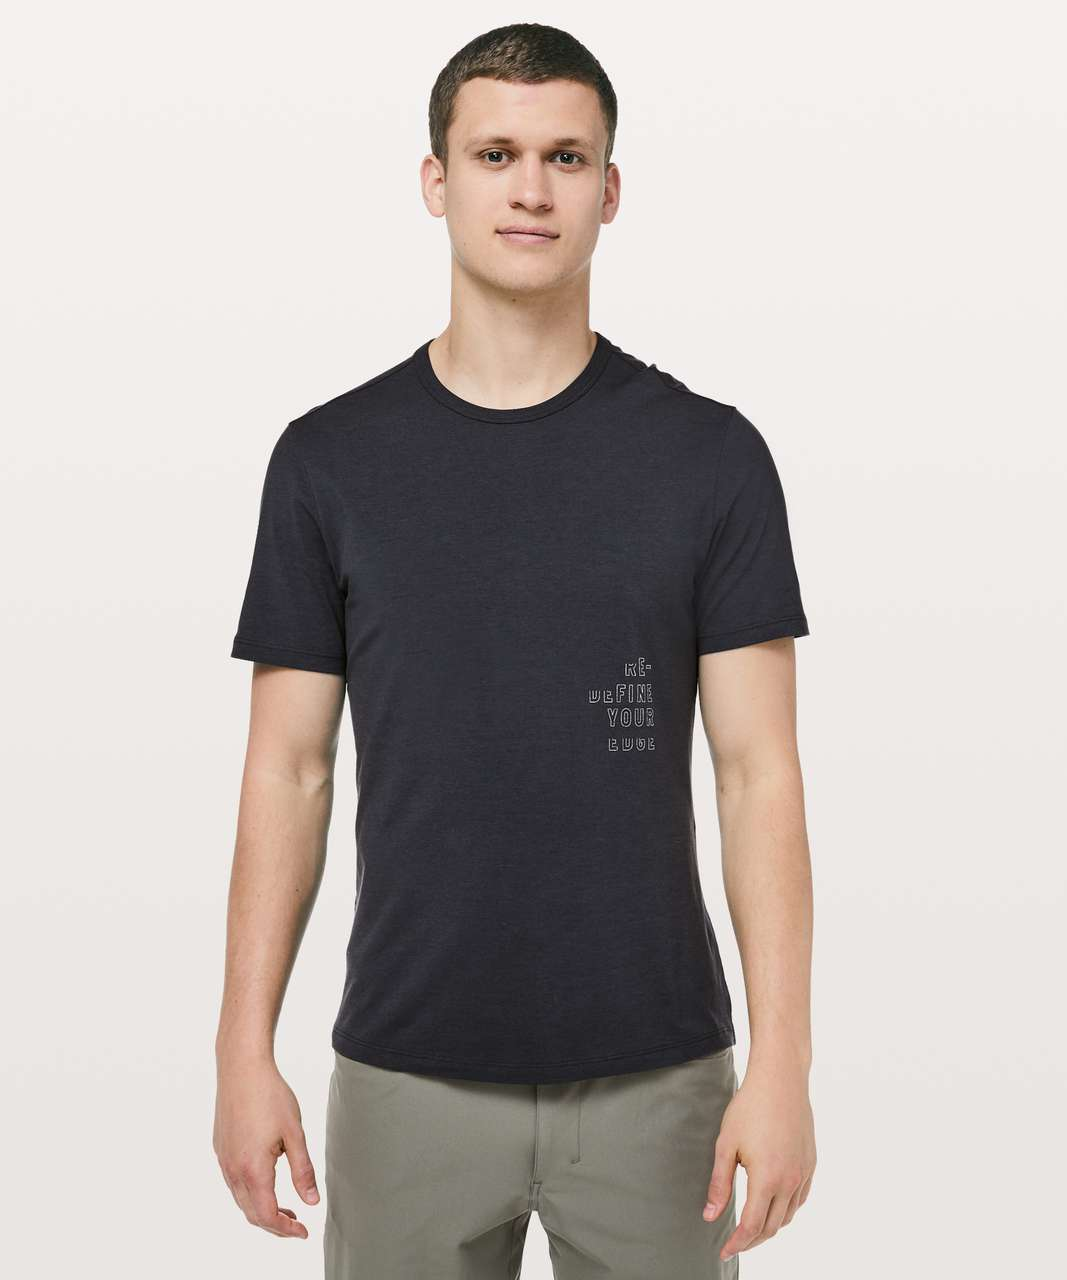 Lululemon 5 Year Basic Tee *Graphic - Obsidian